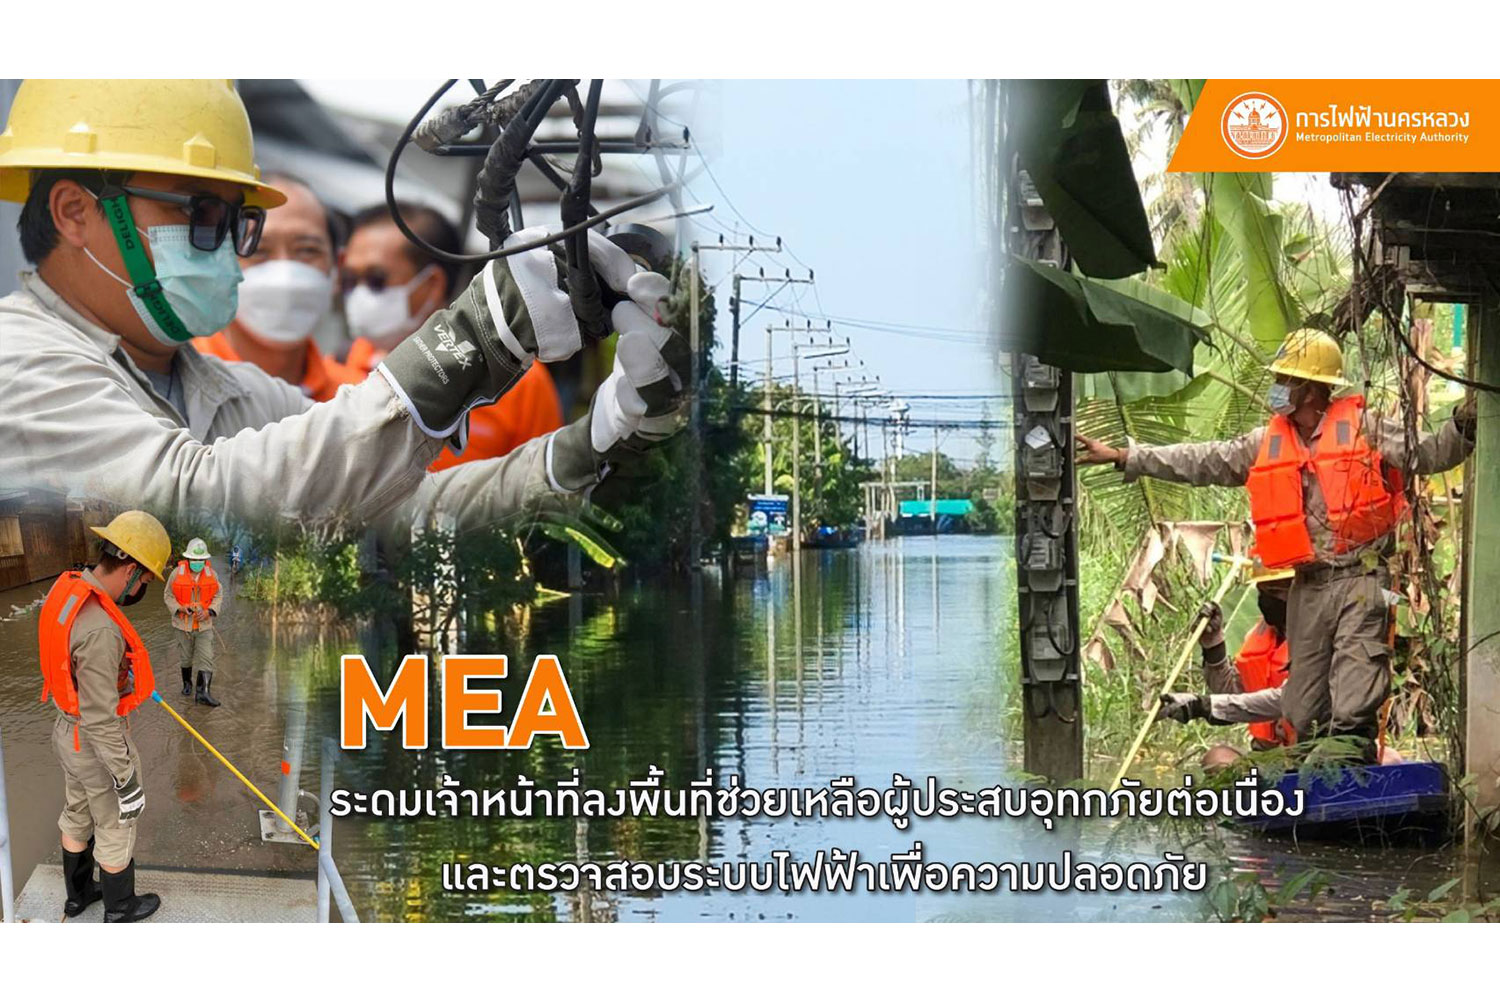 MEA mobilises its staff to ensure electricity safety and provide flood relief